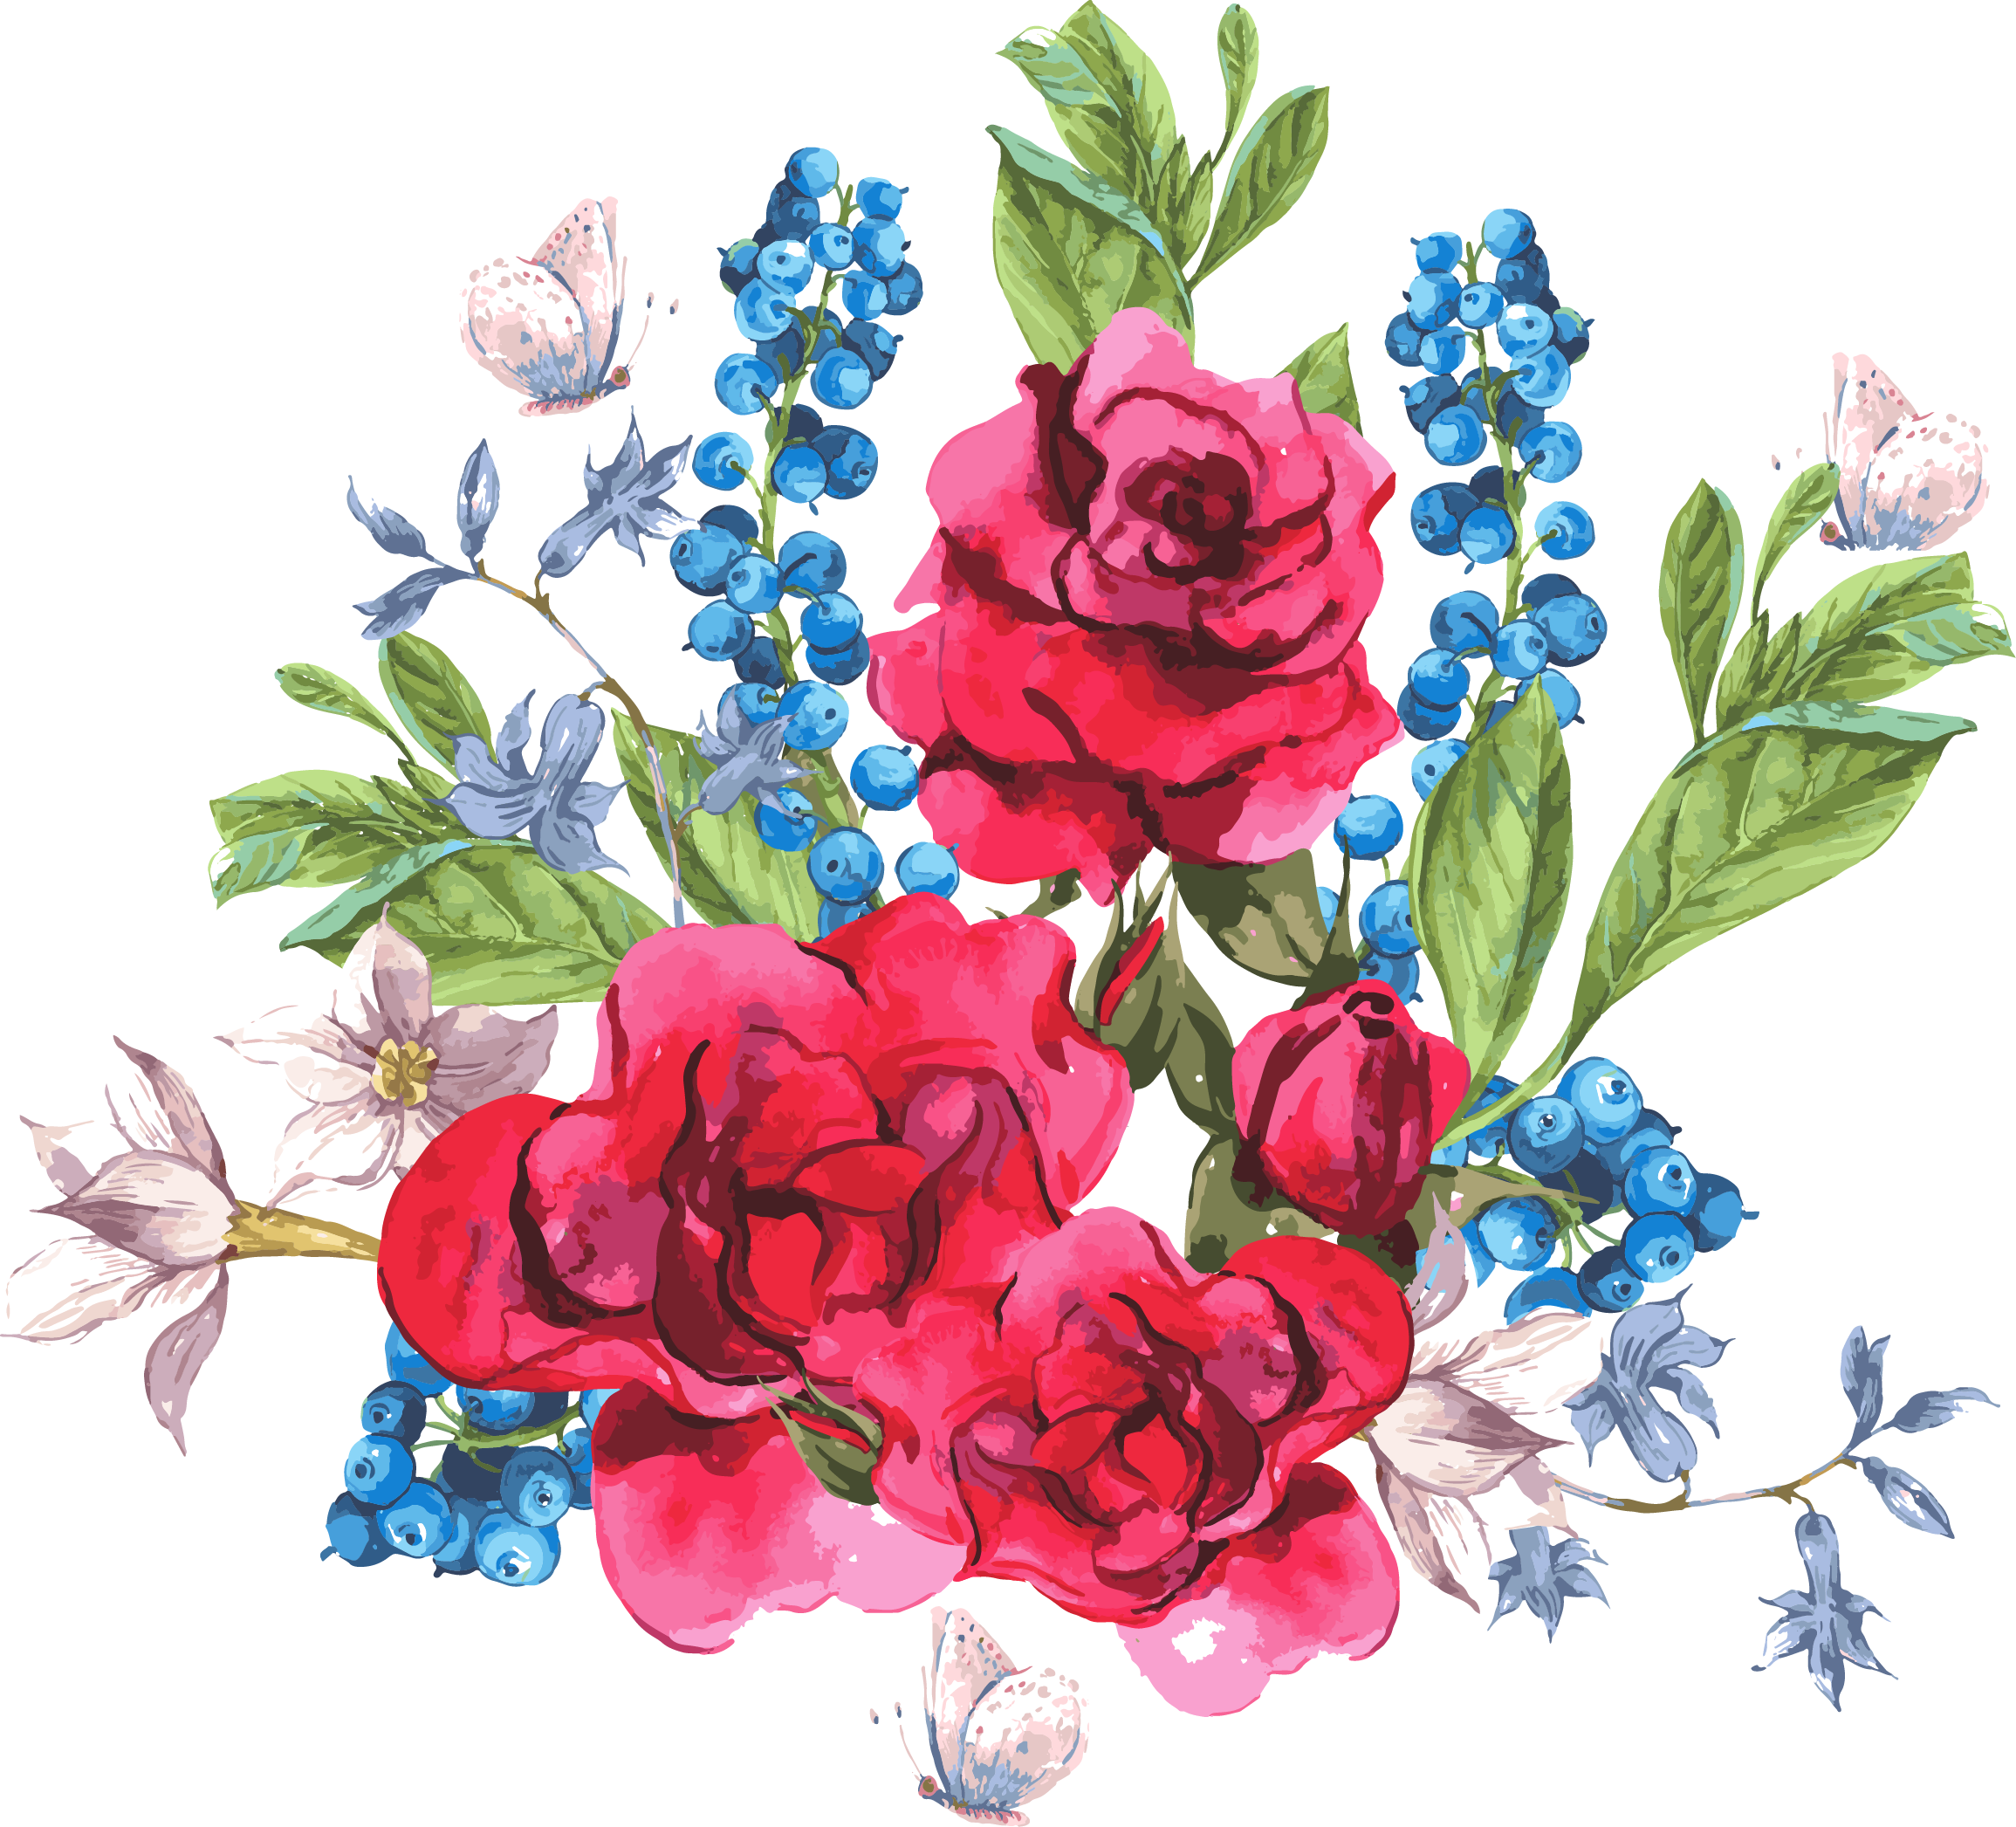 Drawn flowers png. My desing hand draw